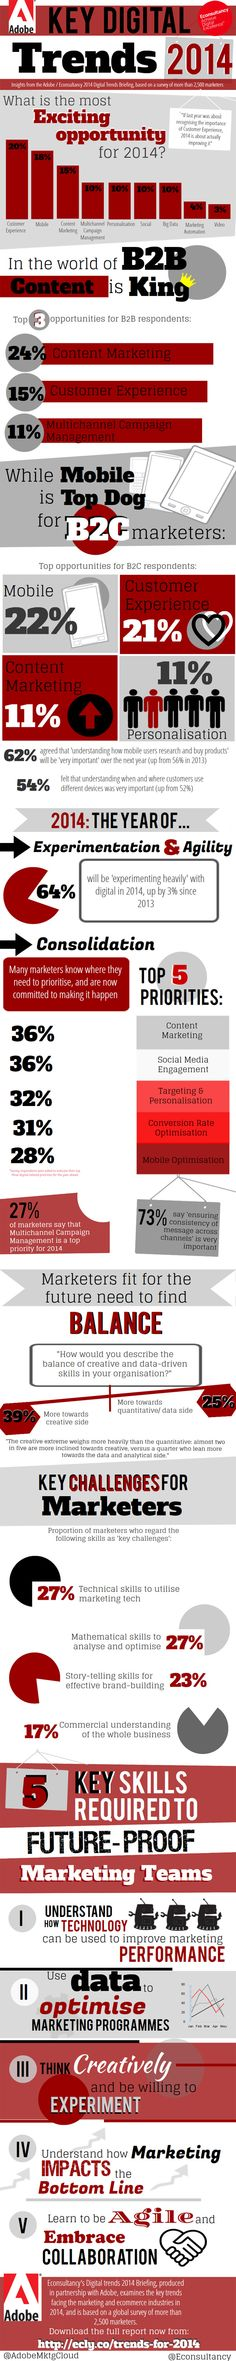 Key Digital Trends for B2B and B2C Marketers in 2014 [Infographic]